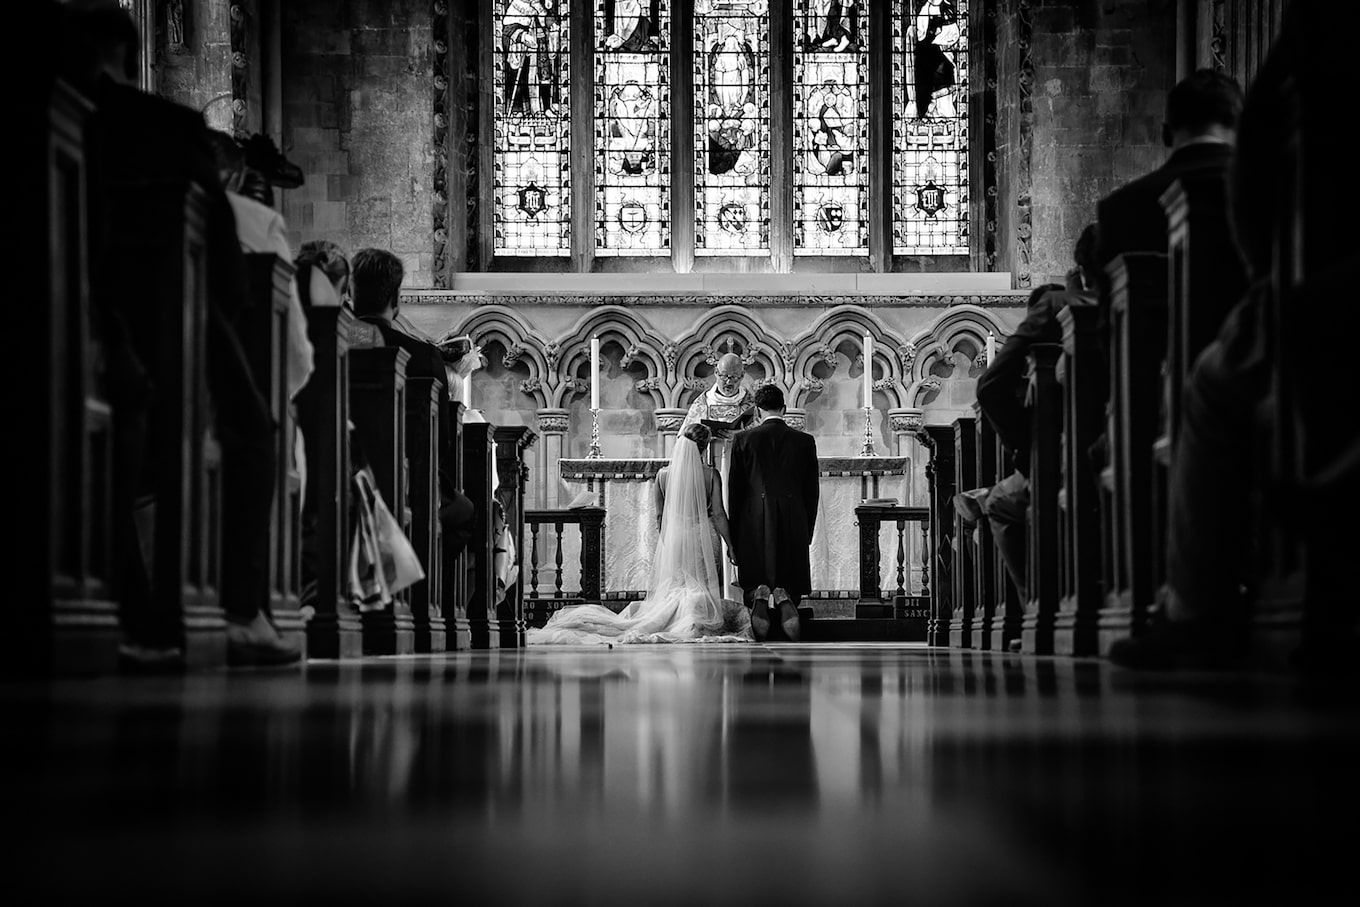 kate-hopewell-smith-sony-alpha-9-wedding-couple-kneeling-before-altar-during-ceremony